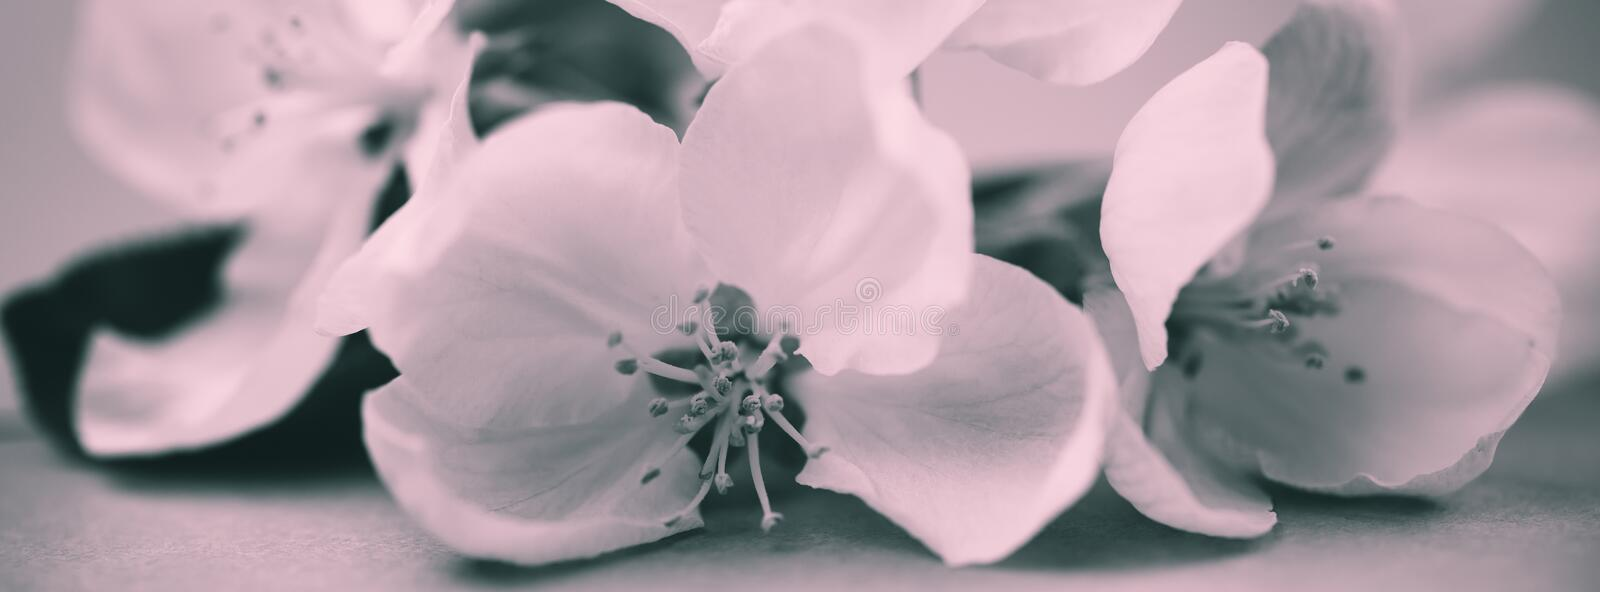 Apple blossoms over blurred bw background stock images